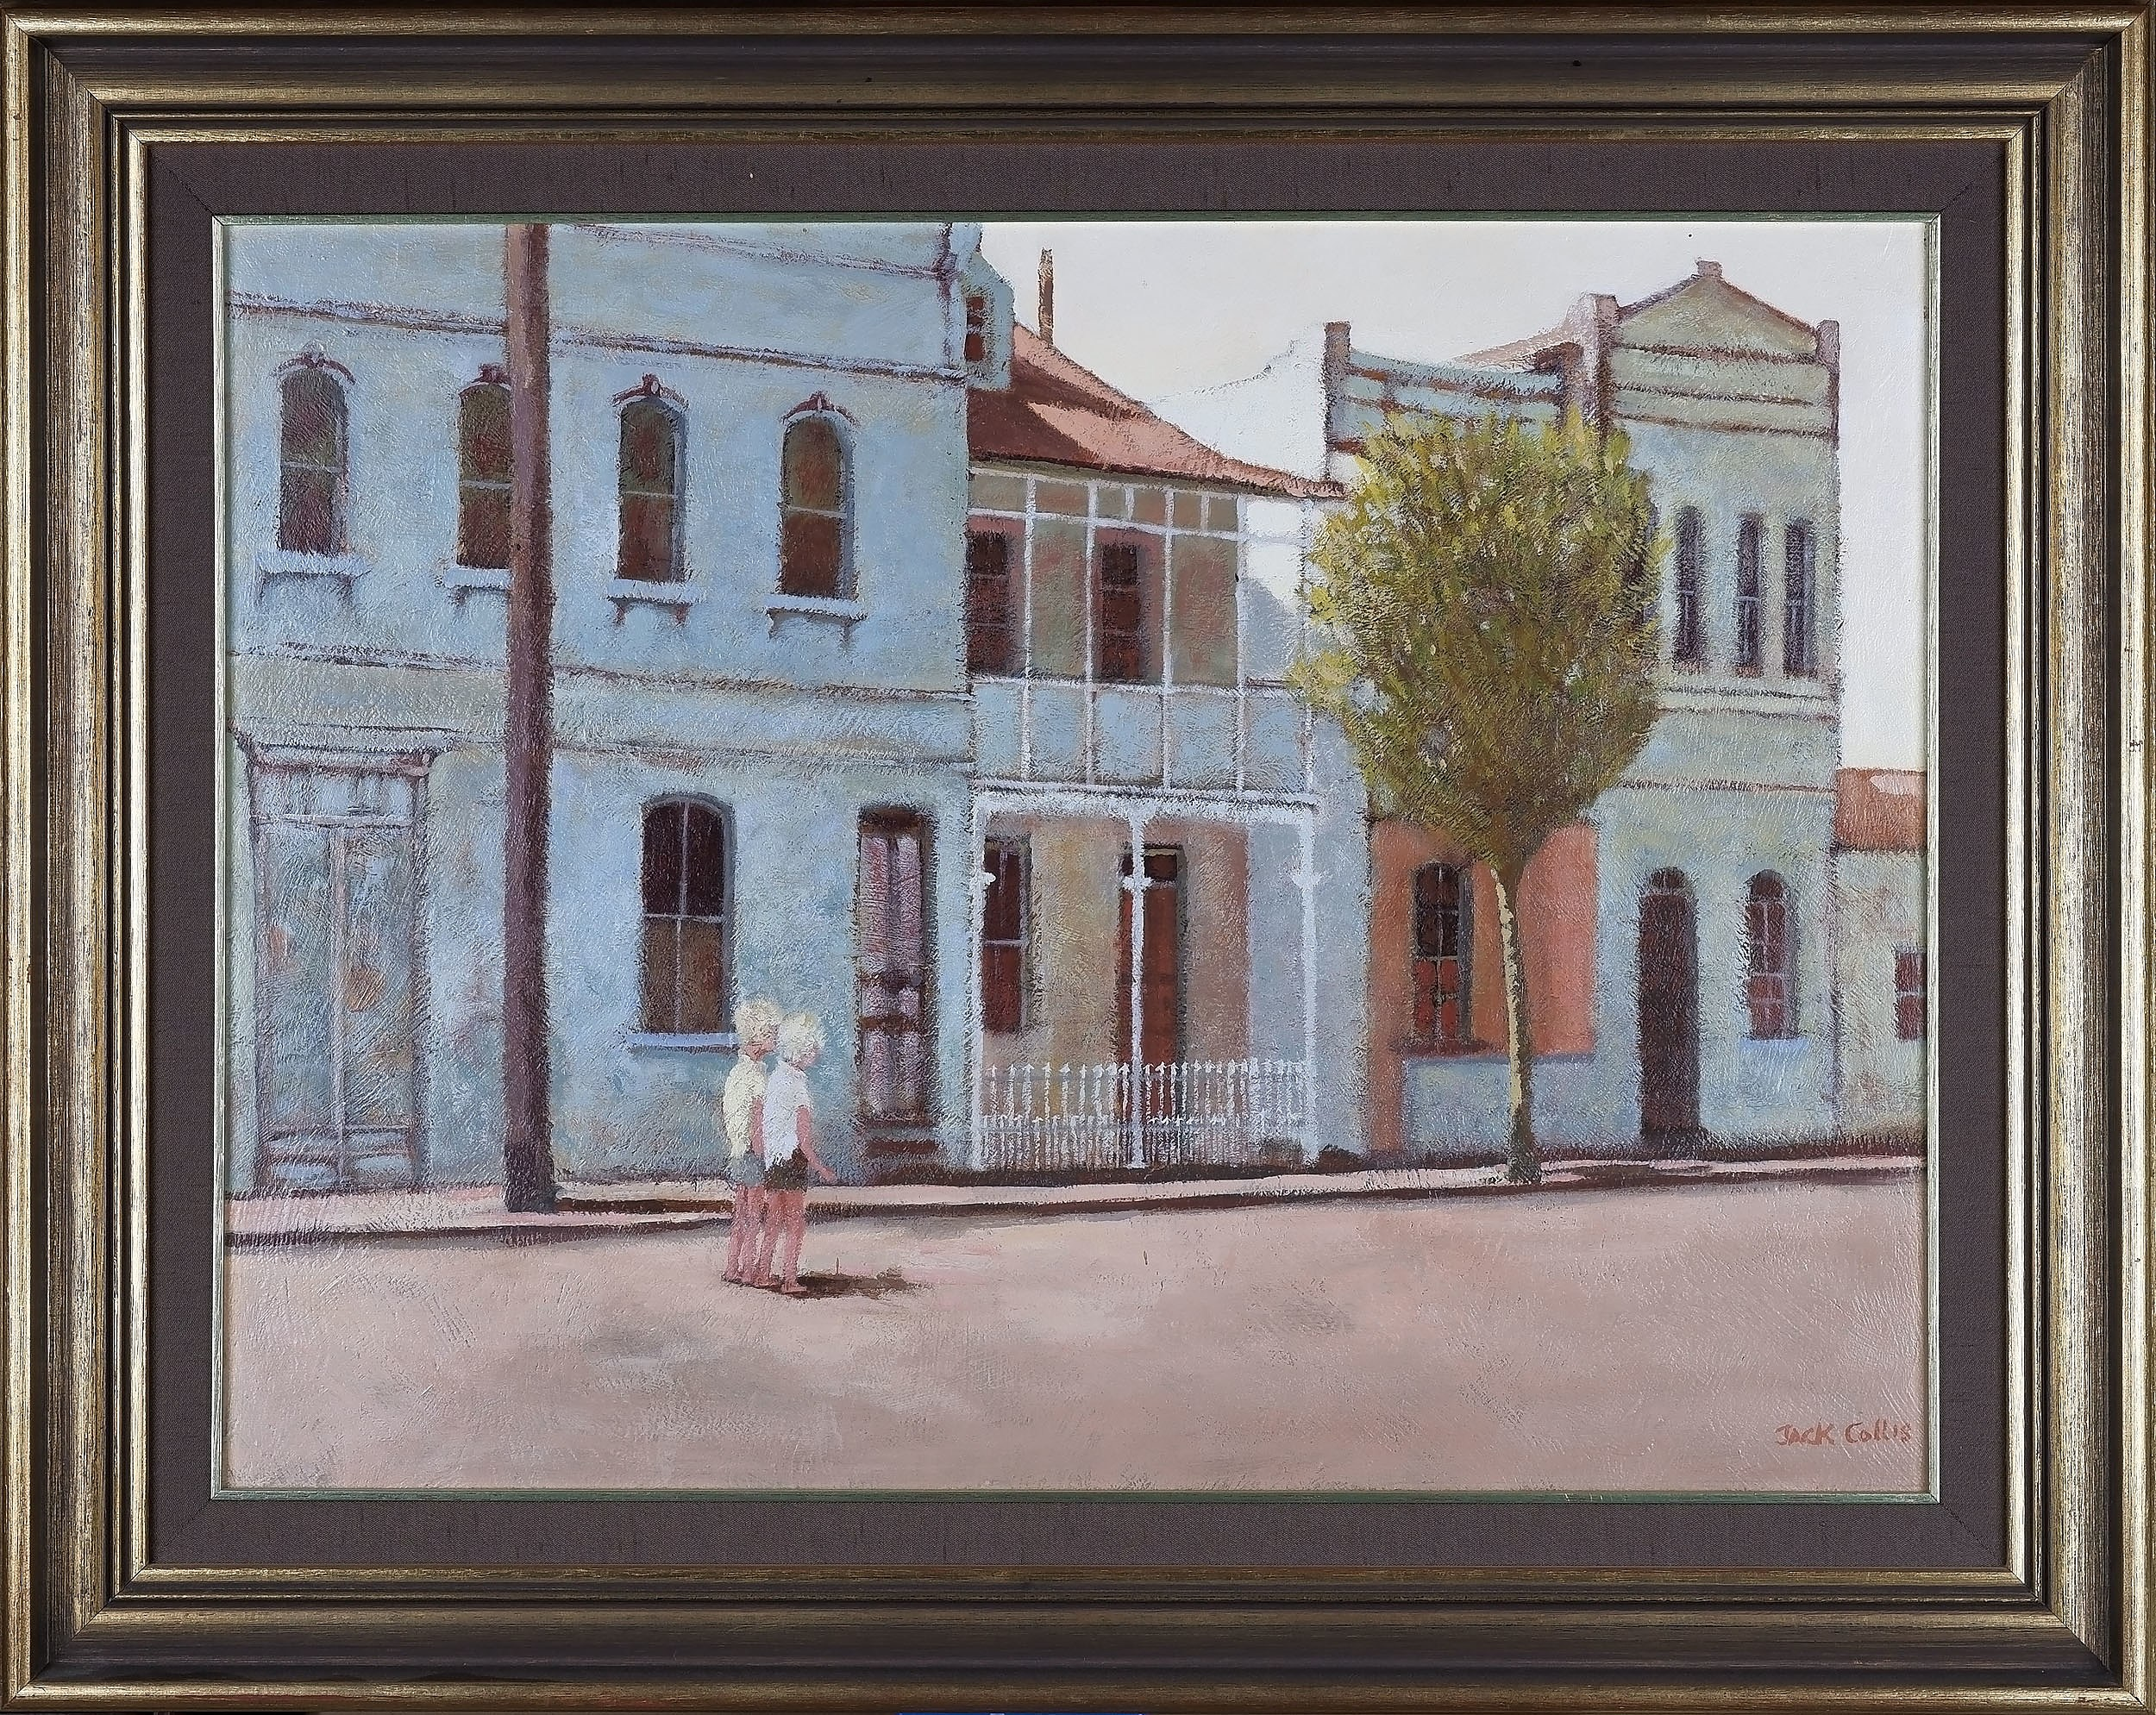 'Jack Collis (1924-) Two Boys And Terraces Sydney Oil On Board'